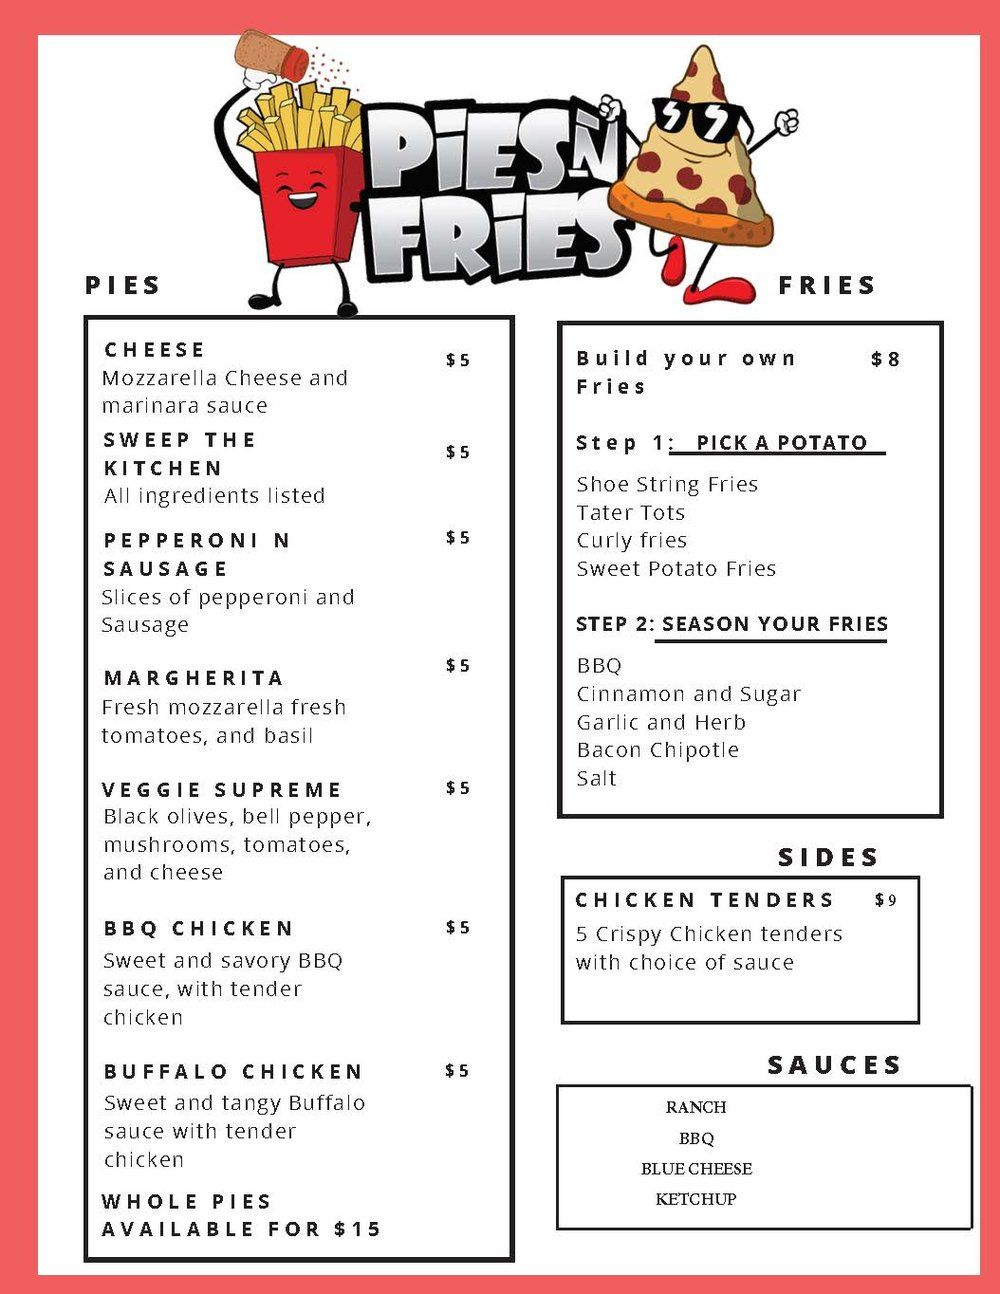 Pies Fries Menu Print 10.11.jpg